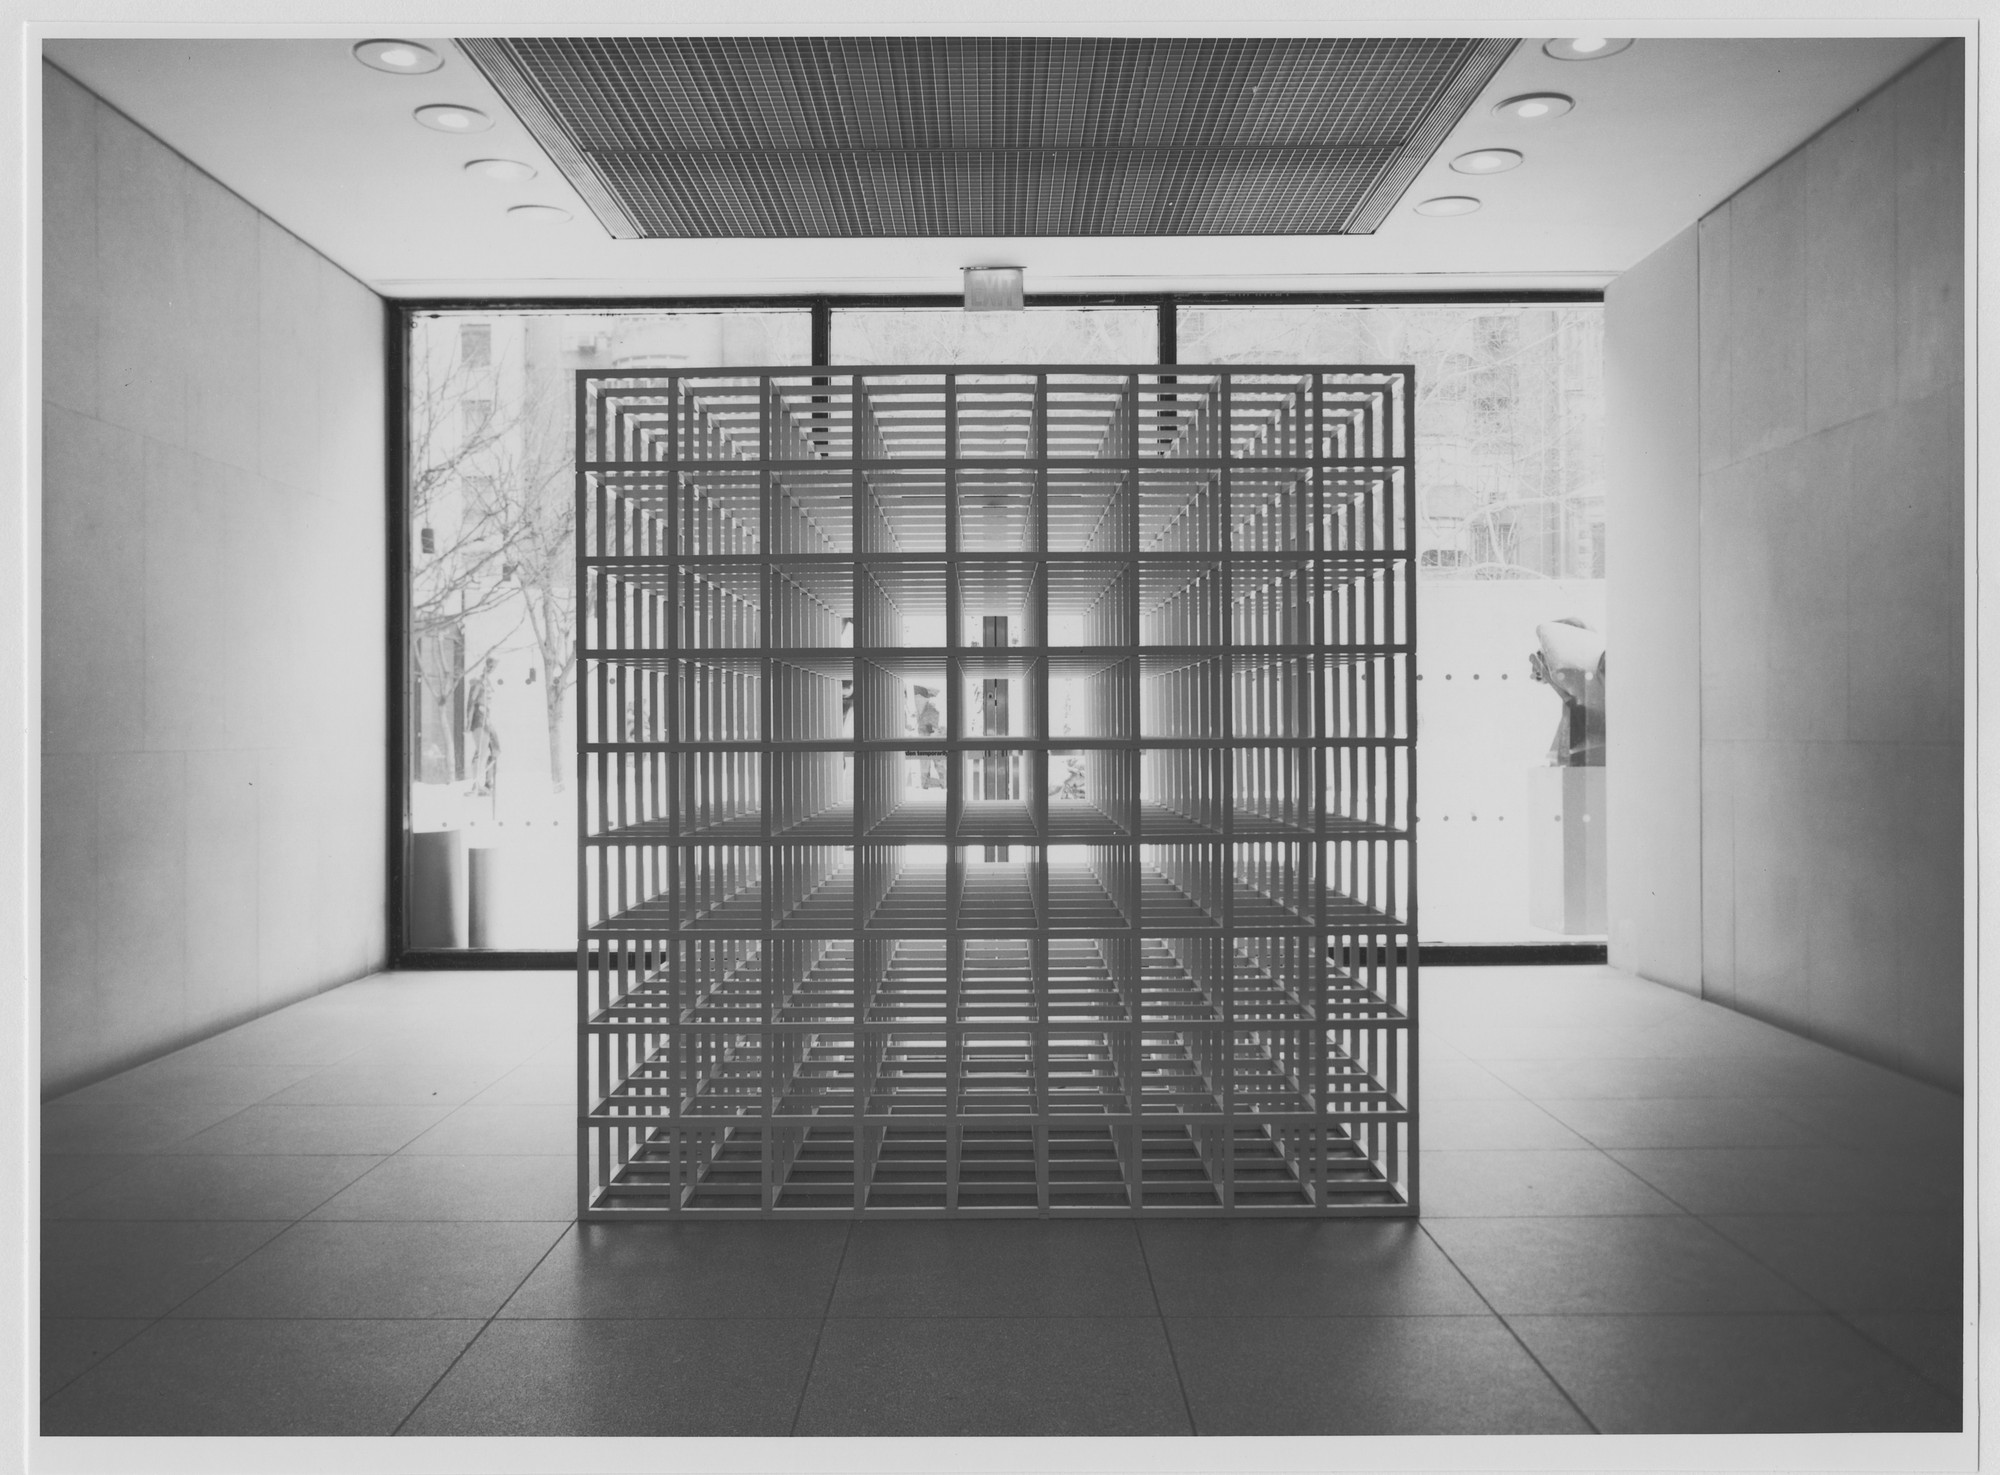 "Installation view of the exhibition, ""Sol LeWitt"" February 3, 1978–April 4, 1978. Photographic Archive. The Museum of Modern Art Archives, New York. IN1197.1. Photograph by Katherine Keller."